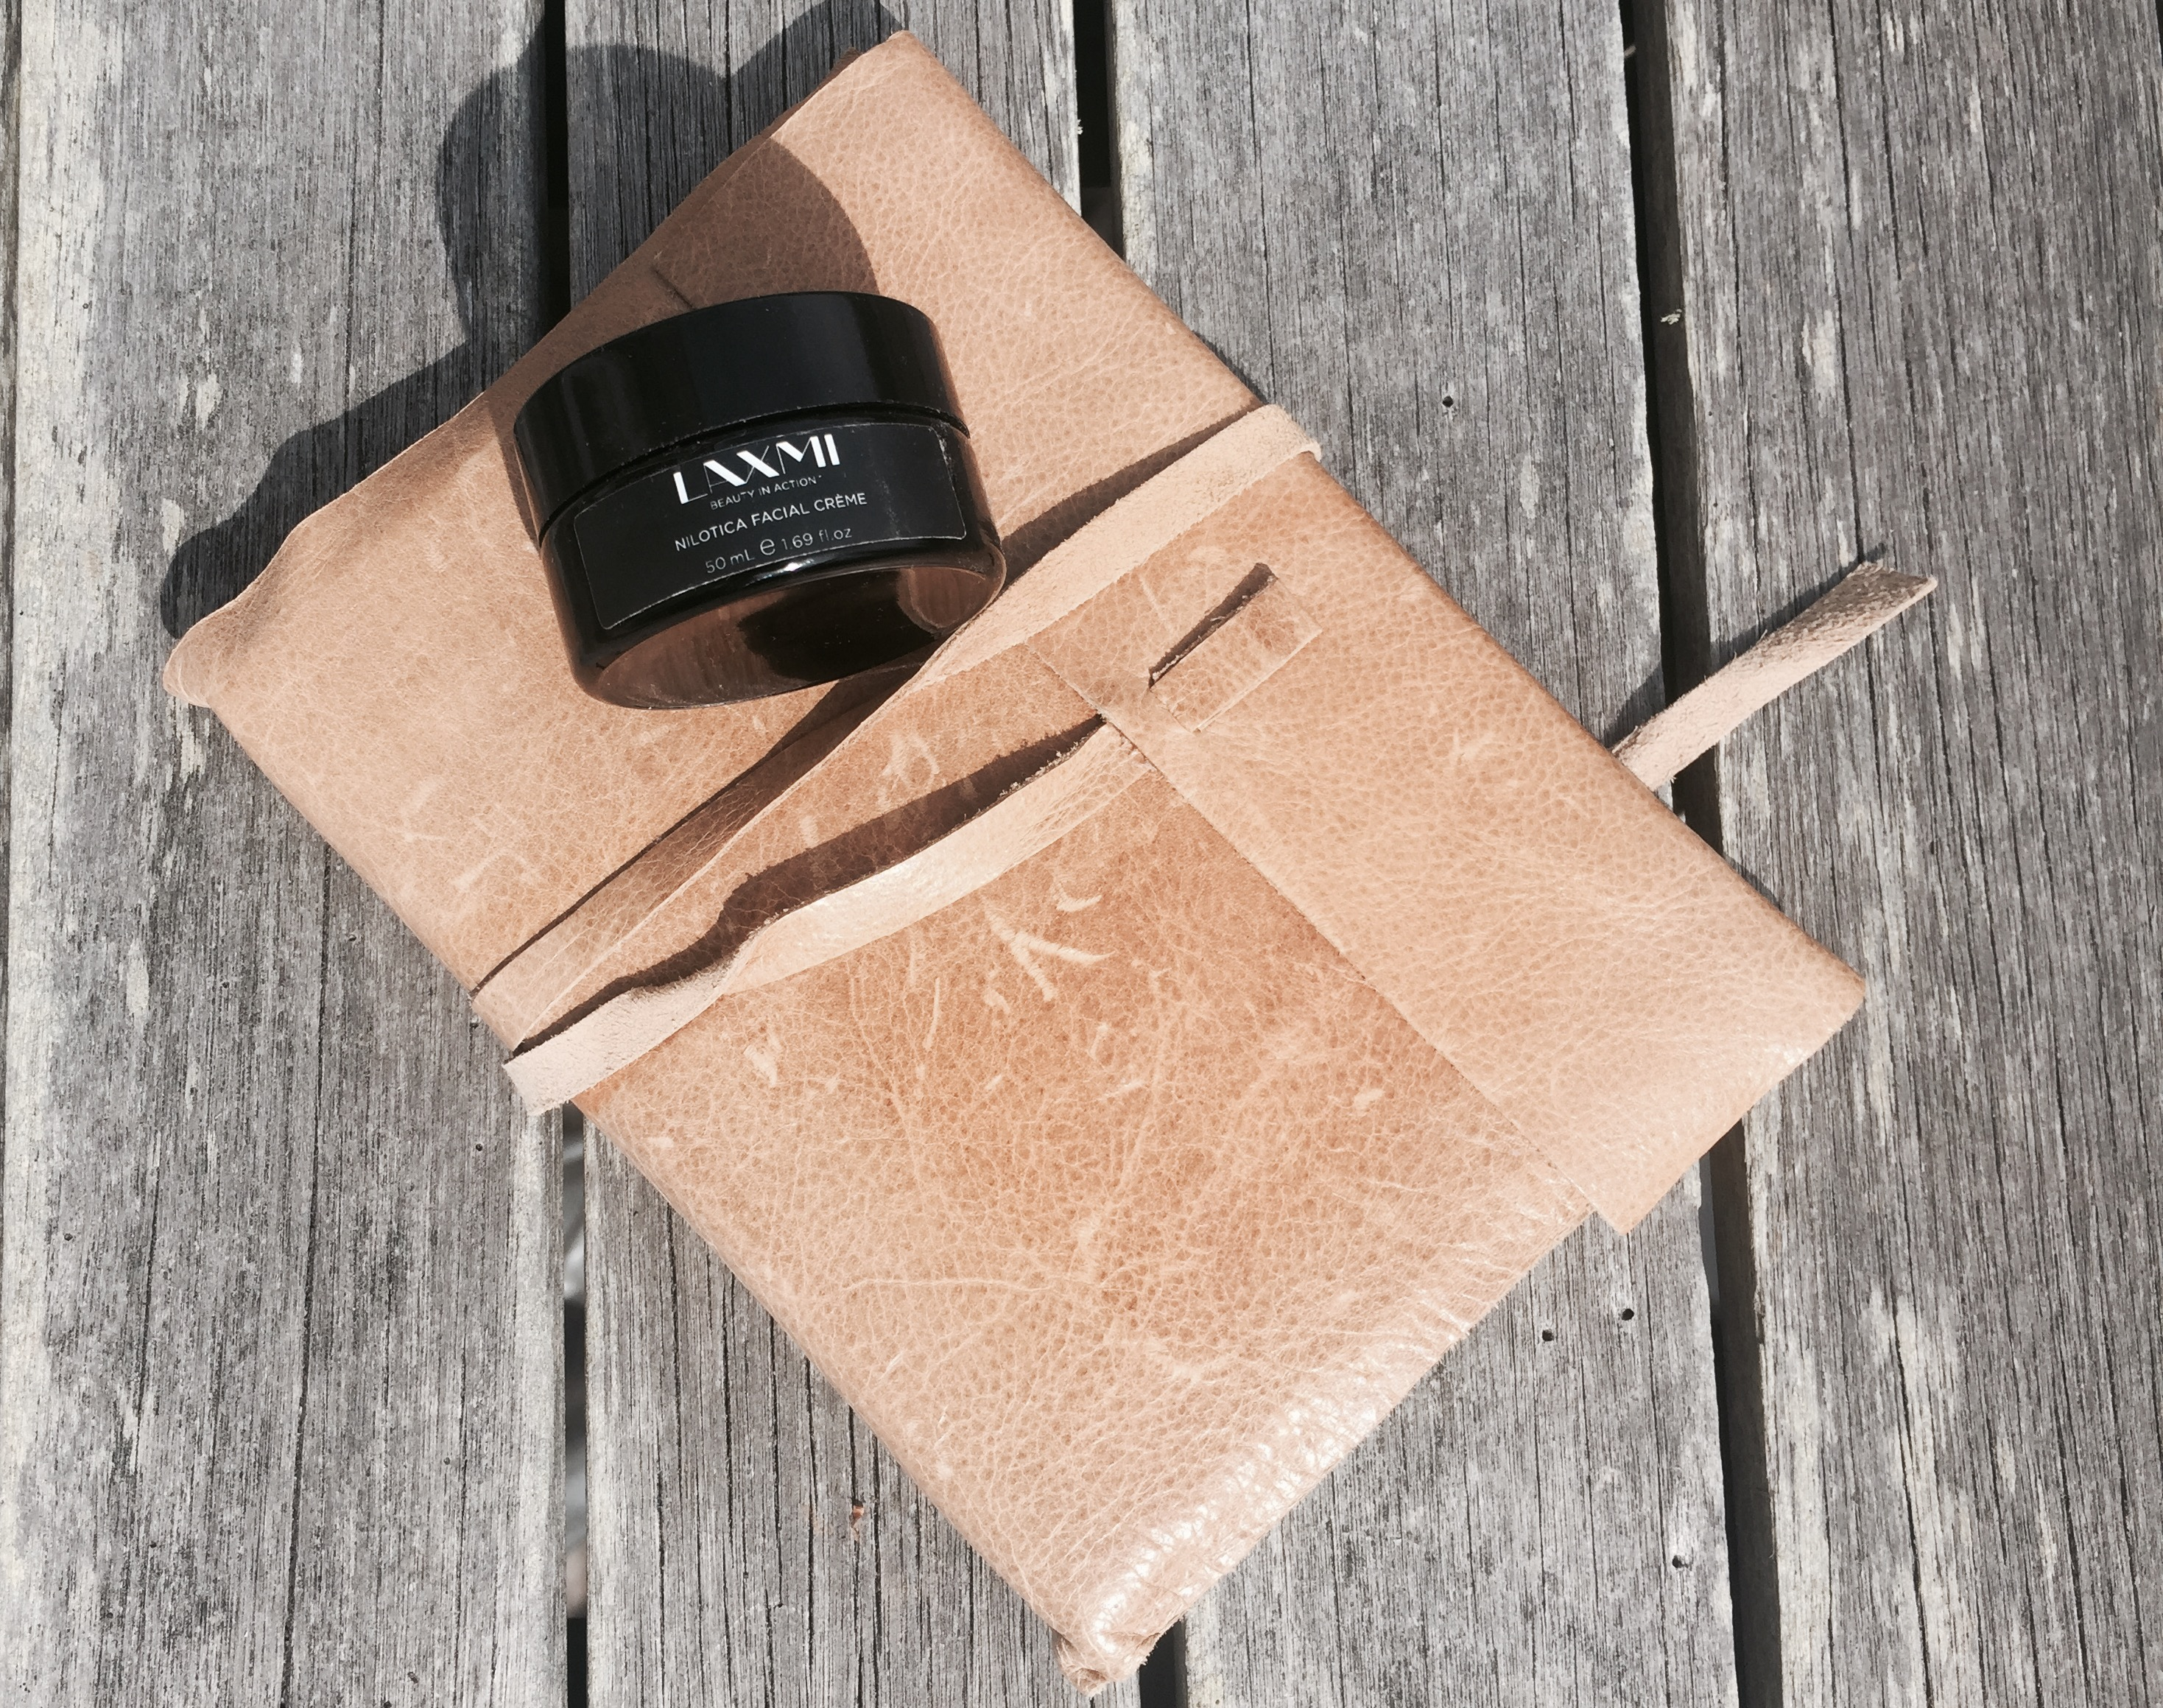 Laxmi, lightweight travel moisturizer